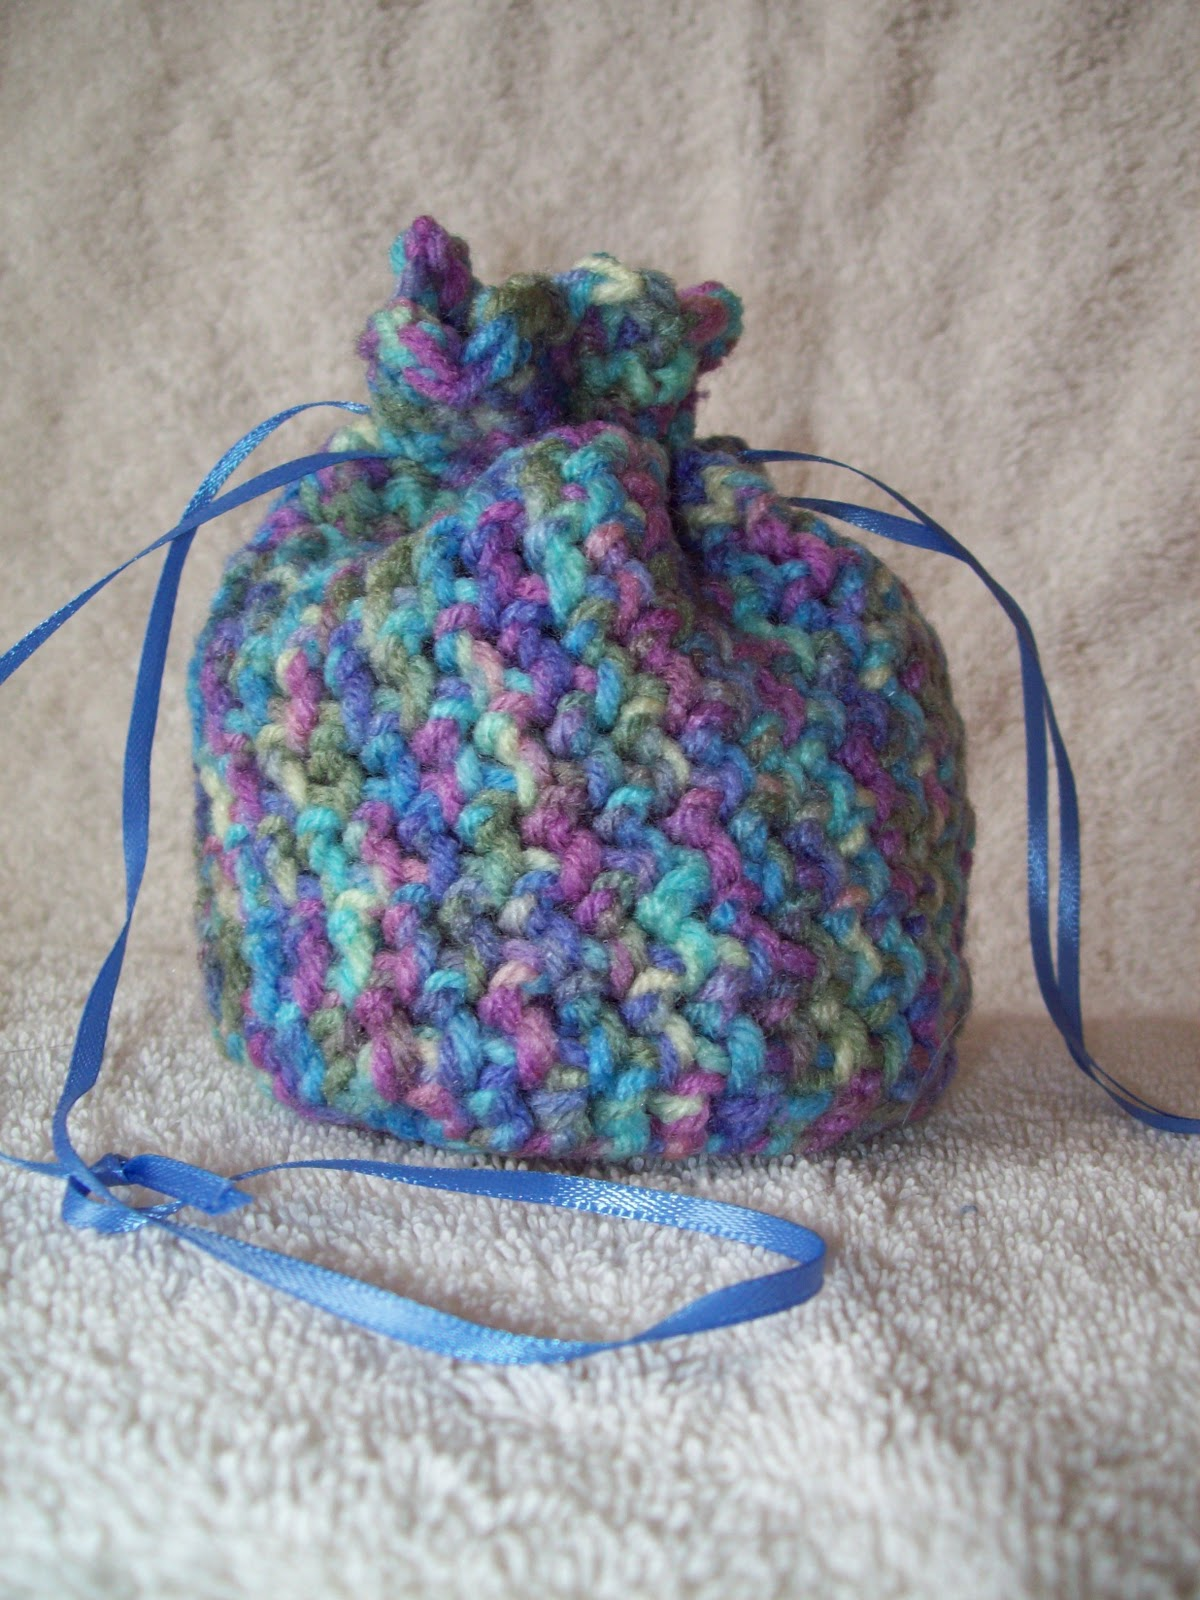 String Bag Crochet Pattern : Monet+Crochet+Mini+Drawstring+Bag+with+a+Ribbon+Drawstring.jpg